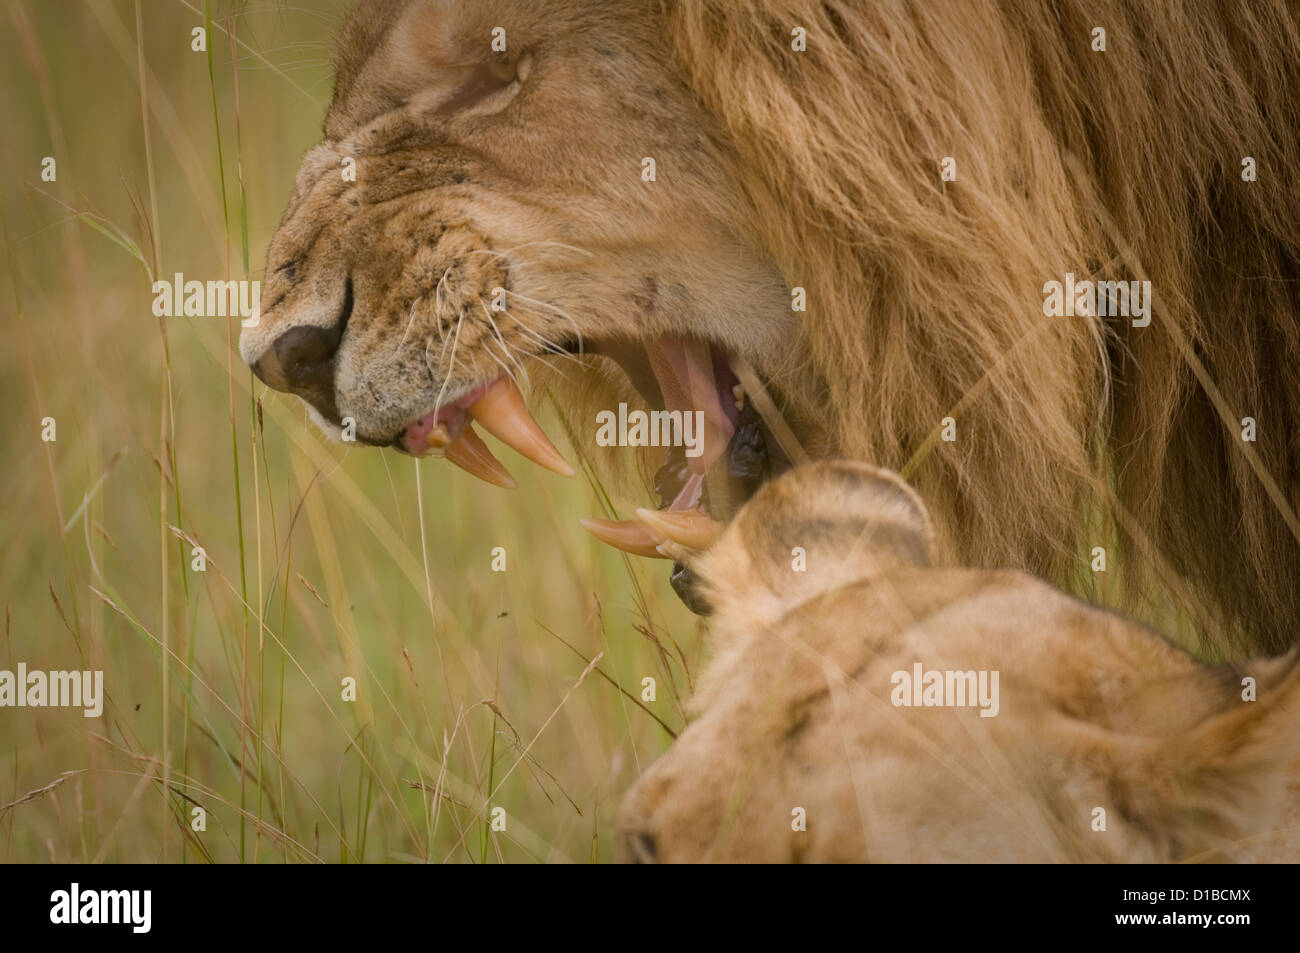 Lion snarling-head shot - Stock Image